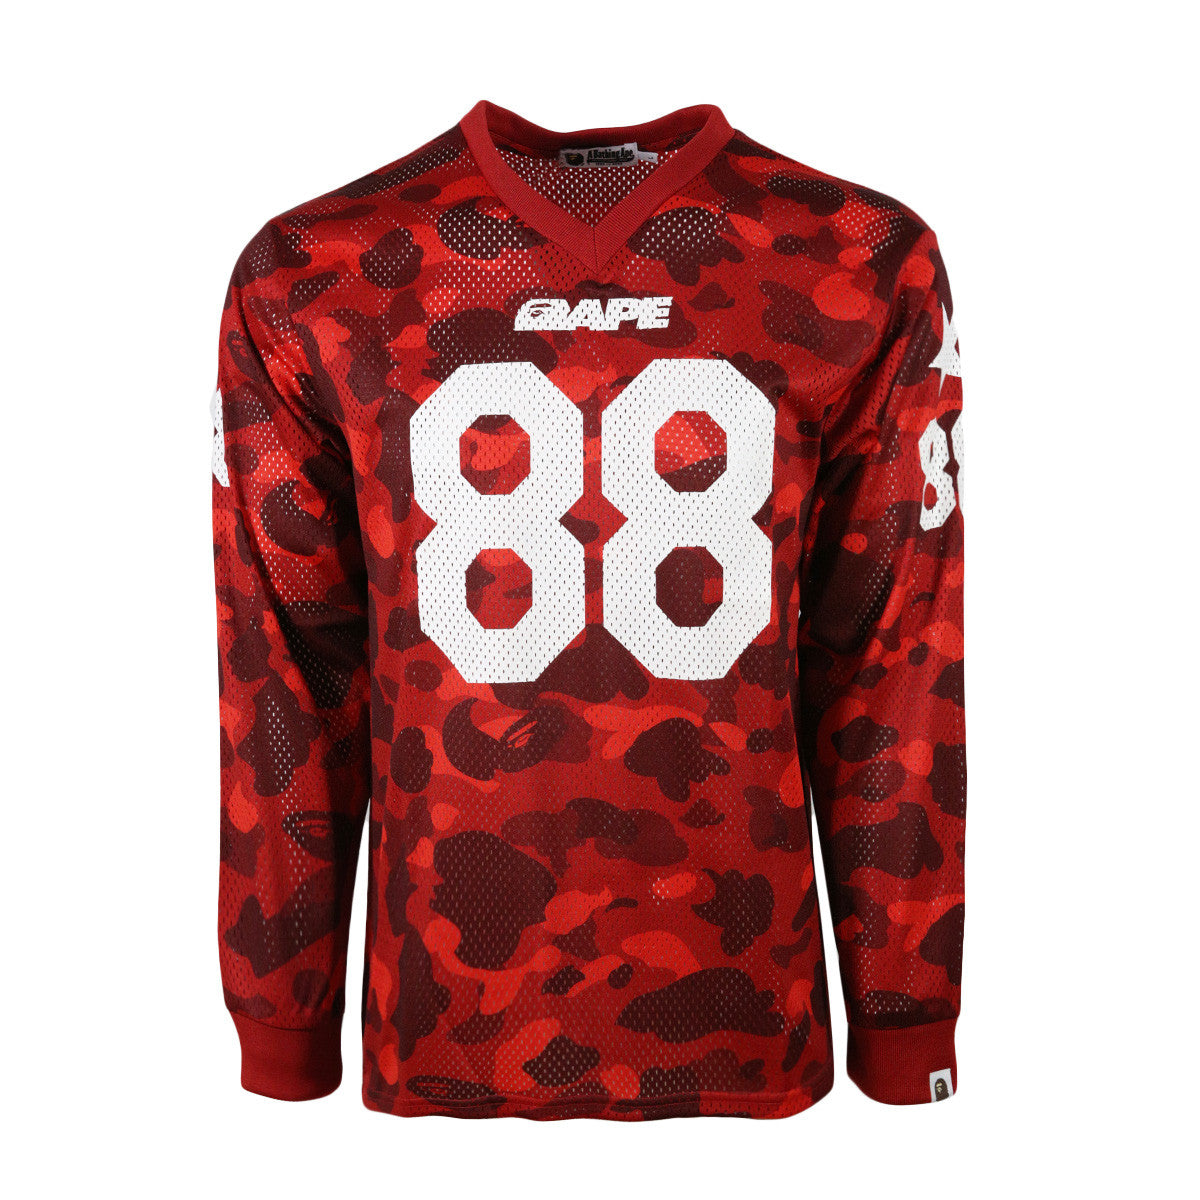 Bape Hockey Jersey L Red Camo